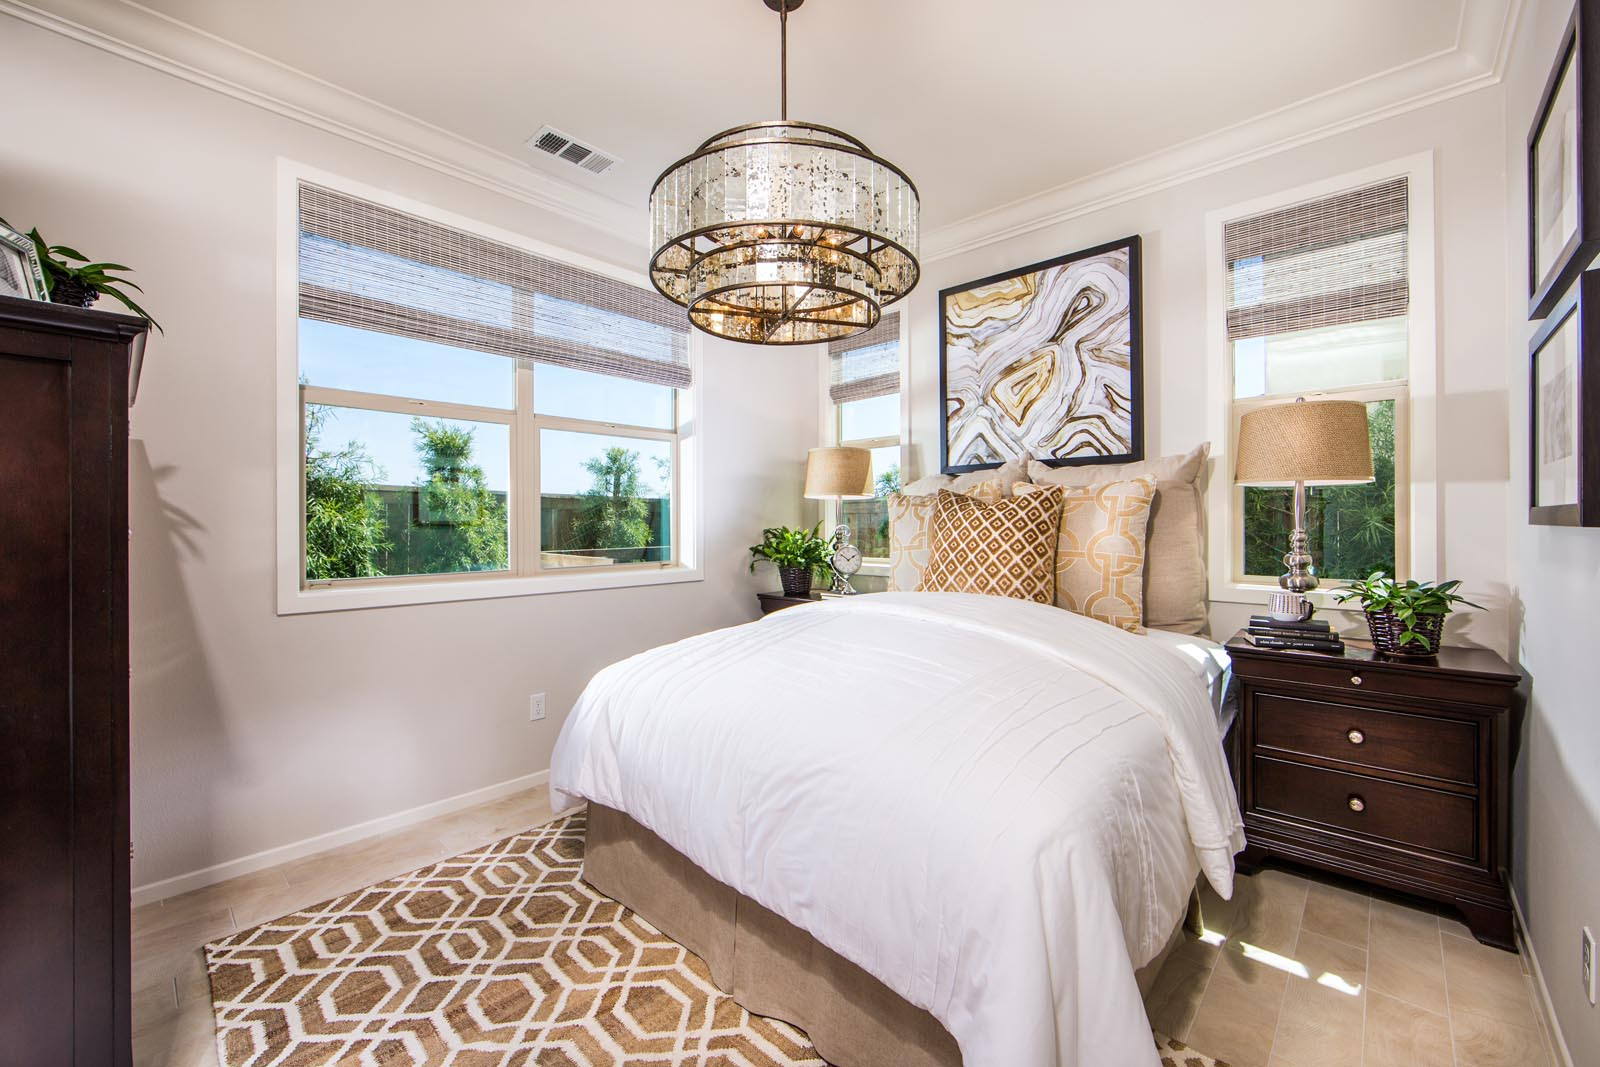 Residence 3 Bedroom 4 | Prado at the Village of Escaya in Chula Vista, CA | Brookfield Residential